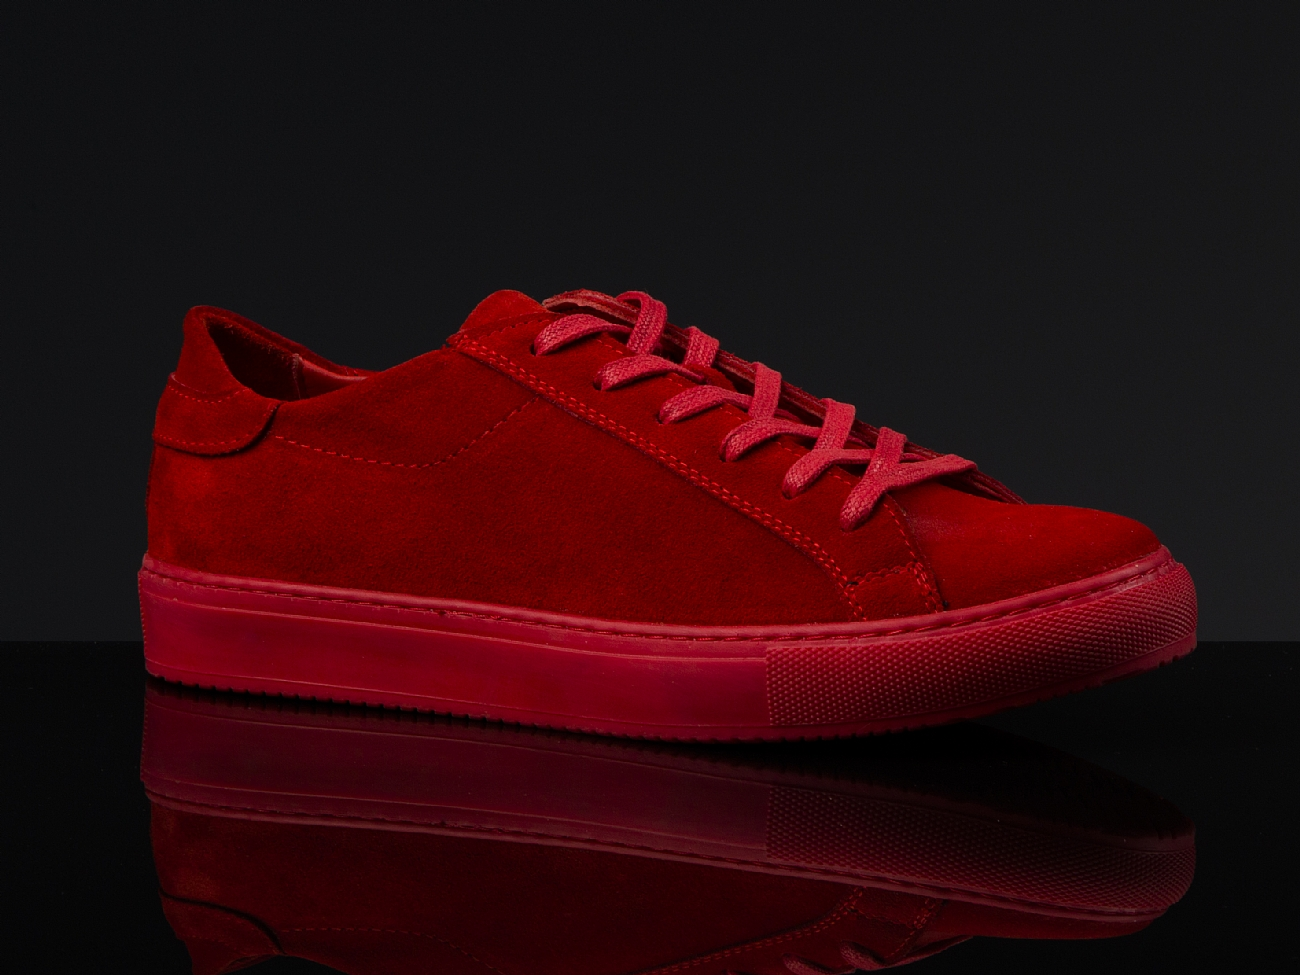 102 Red Suede